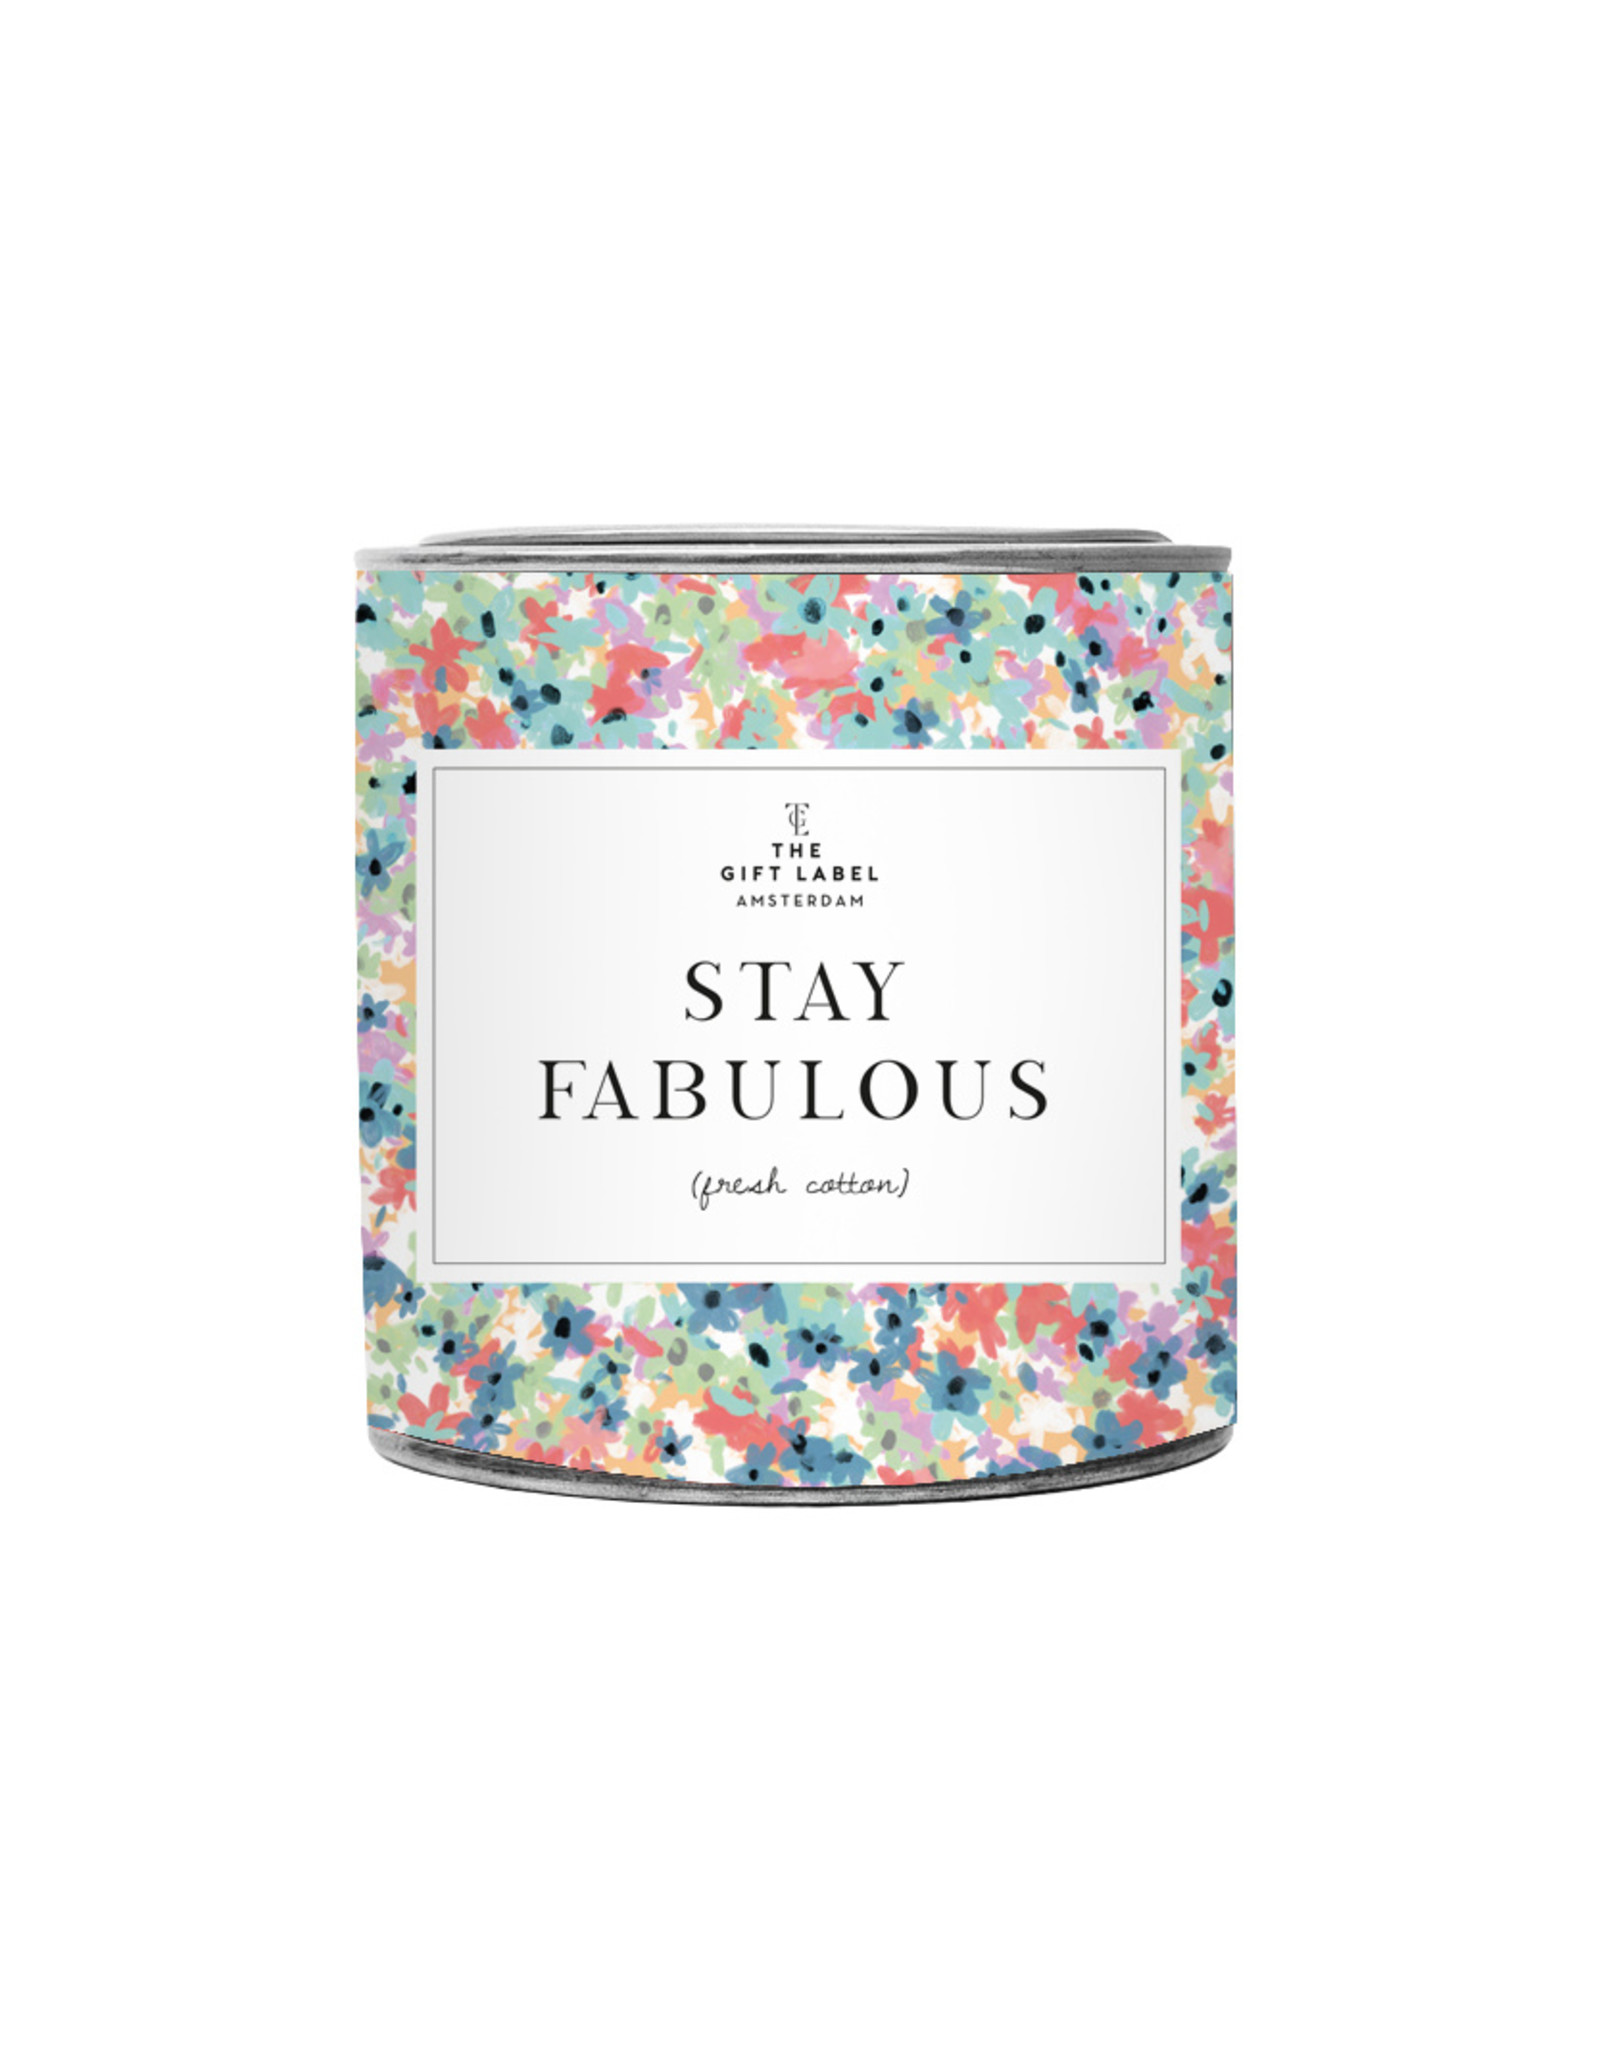 The Gift Label The Gift Label Candle Tin Stay Fabulous Fresh Cotton21L